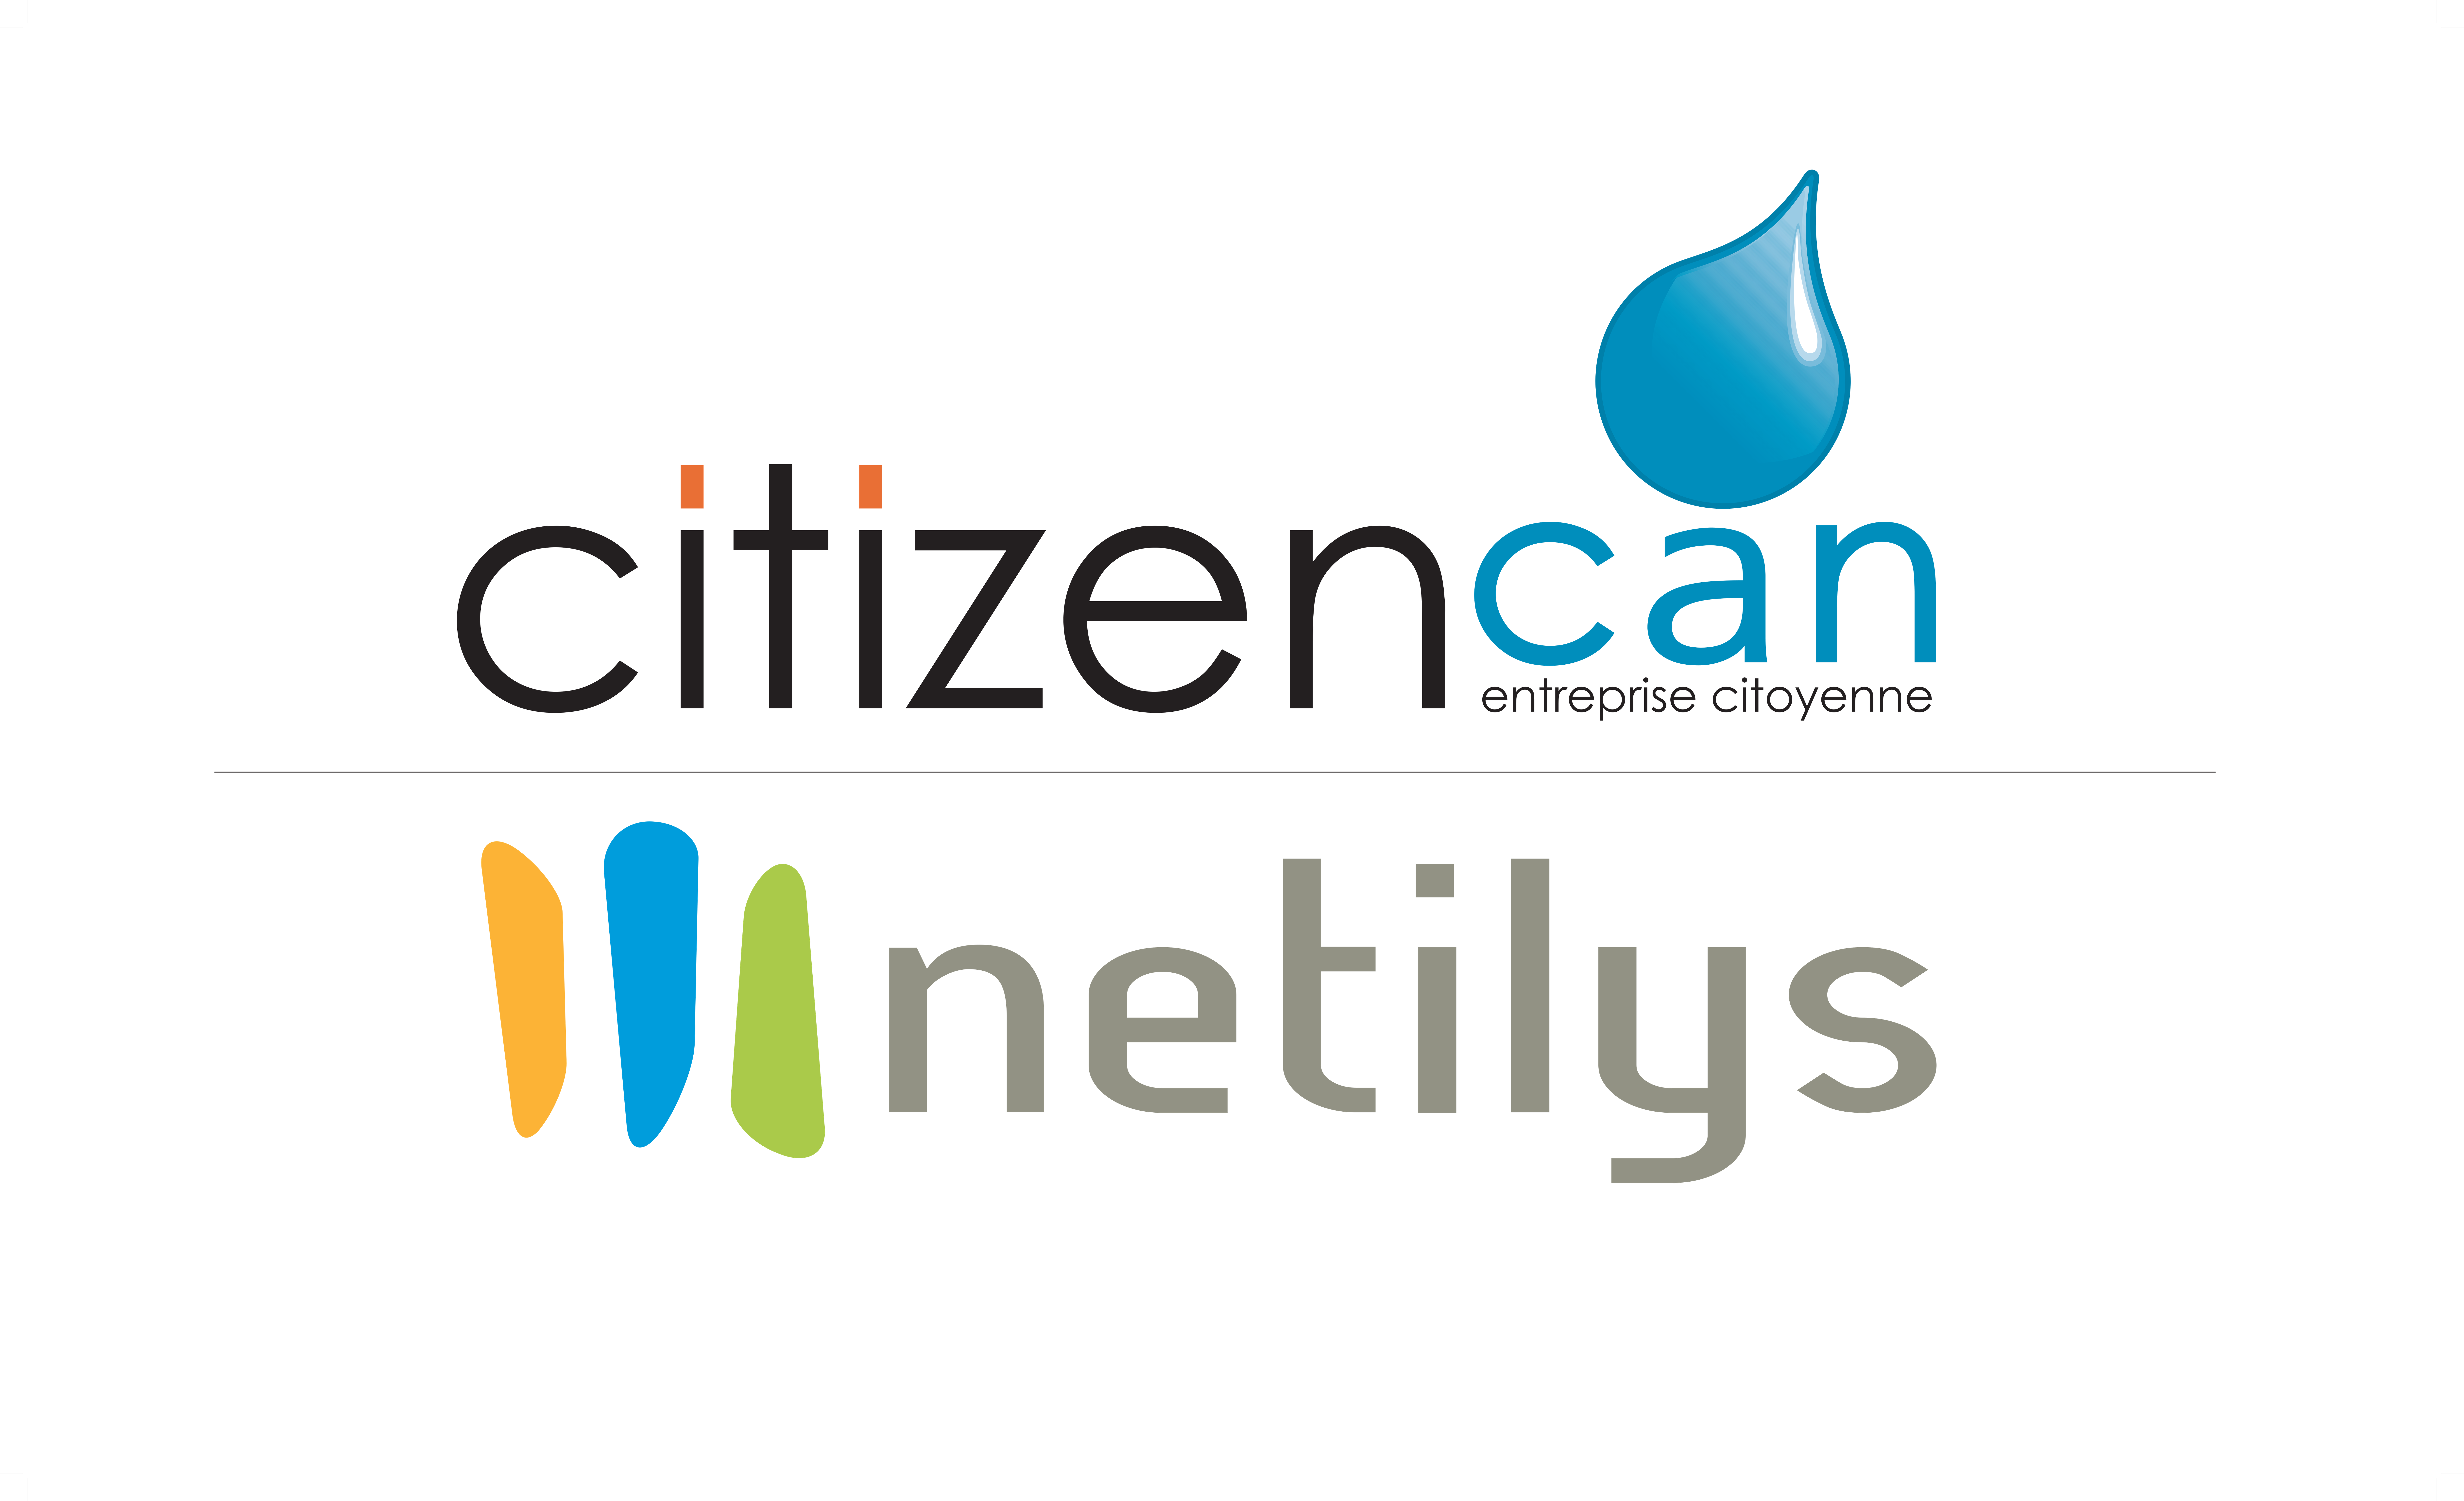 CITIZEN CAN / NETILYS